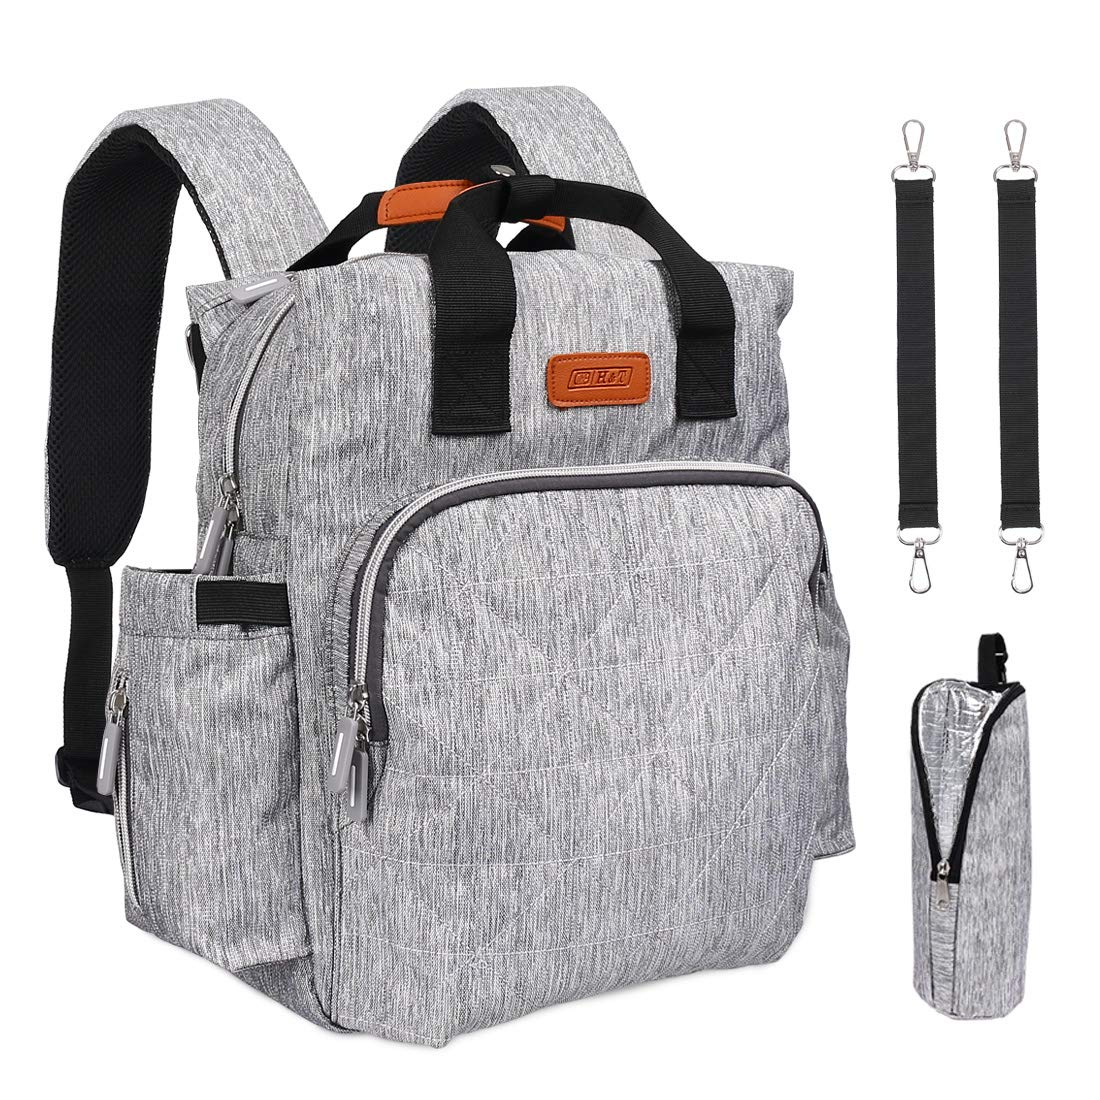 Diaper Bag Backpack, Large and Covenience Diaper Bags for Baby Girl/Boy, Multi-Function Waterproof Travel Baby Bag with USB Charging Port/Stroller Straps/Thermal Pockets/Changing Mat,Grey